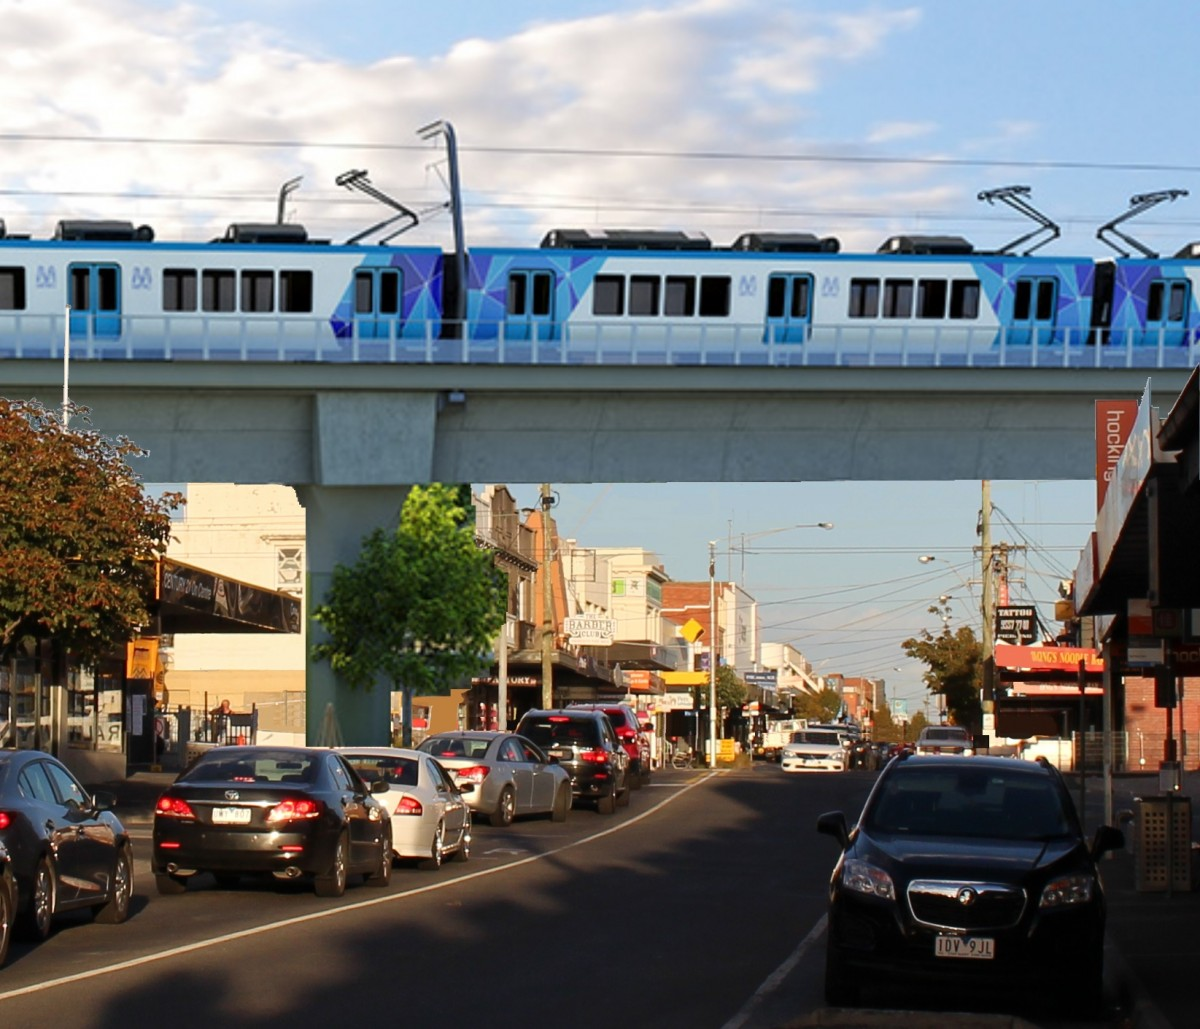 What if Bentleigh had got Skyrail?